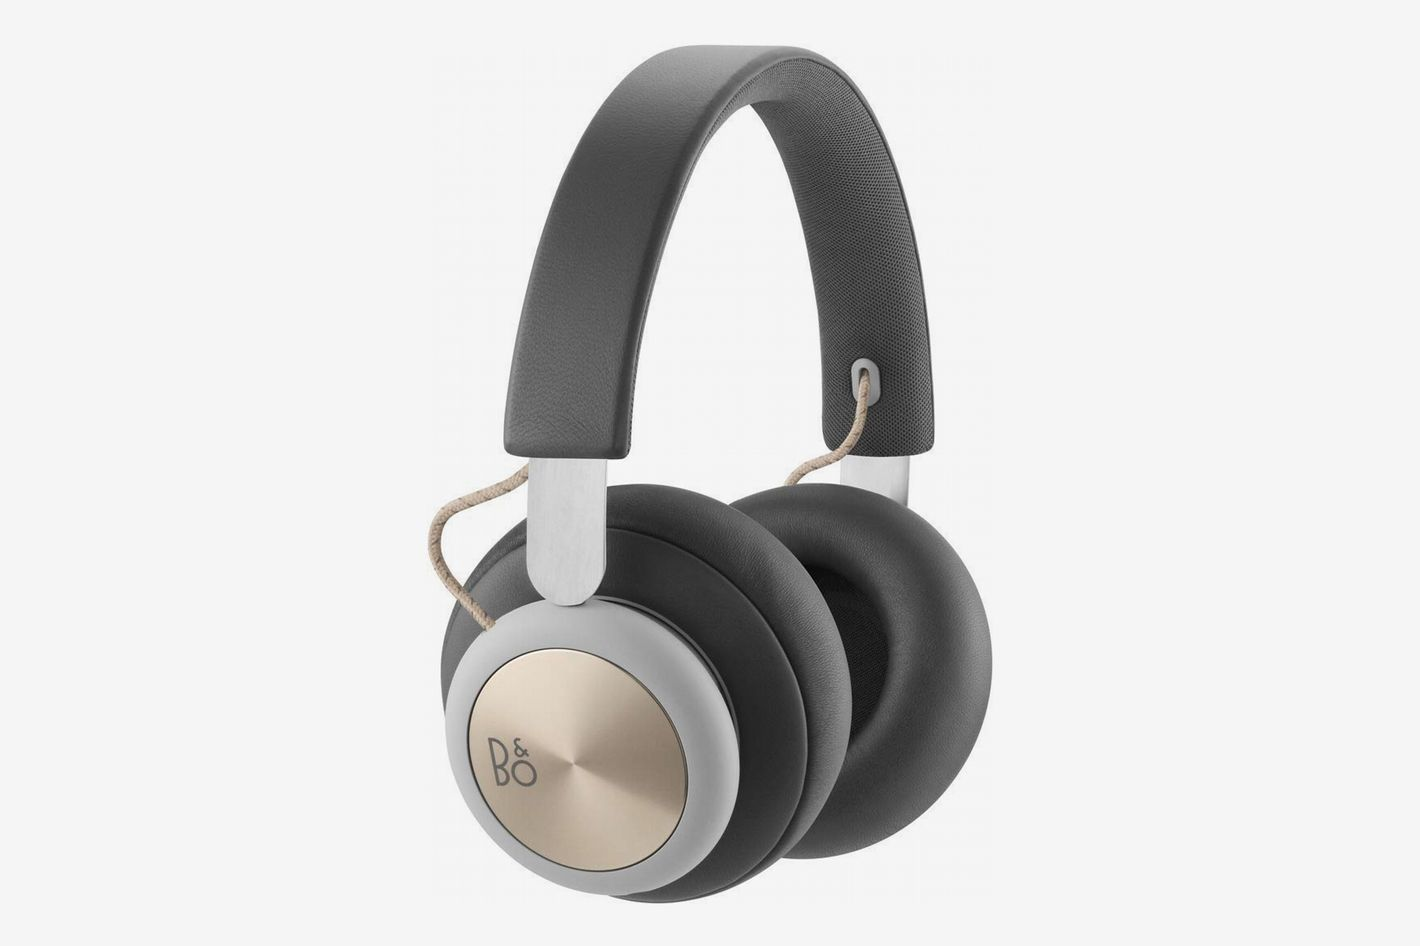 Bang & Olufsen Beoplay H4 Bluetooth Headphones